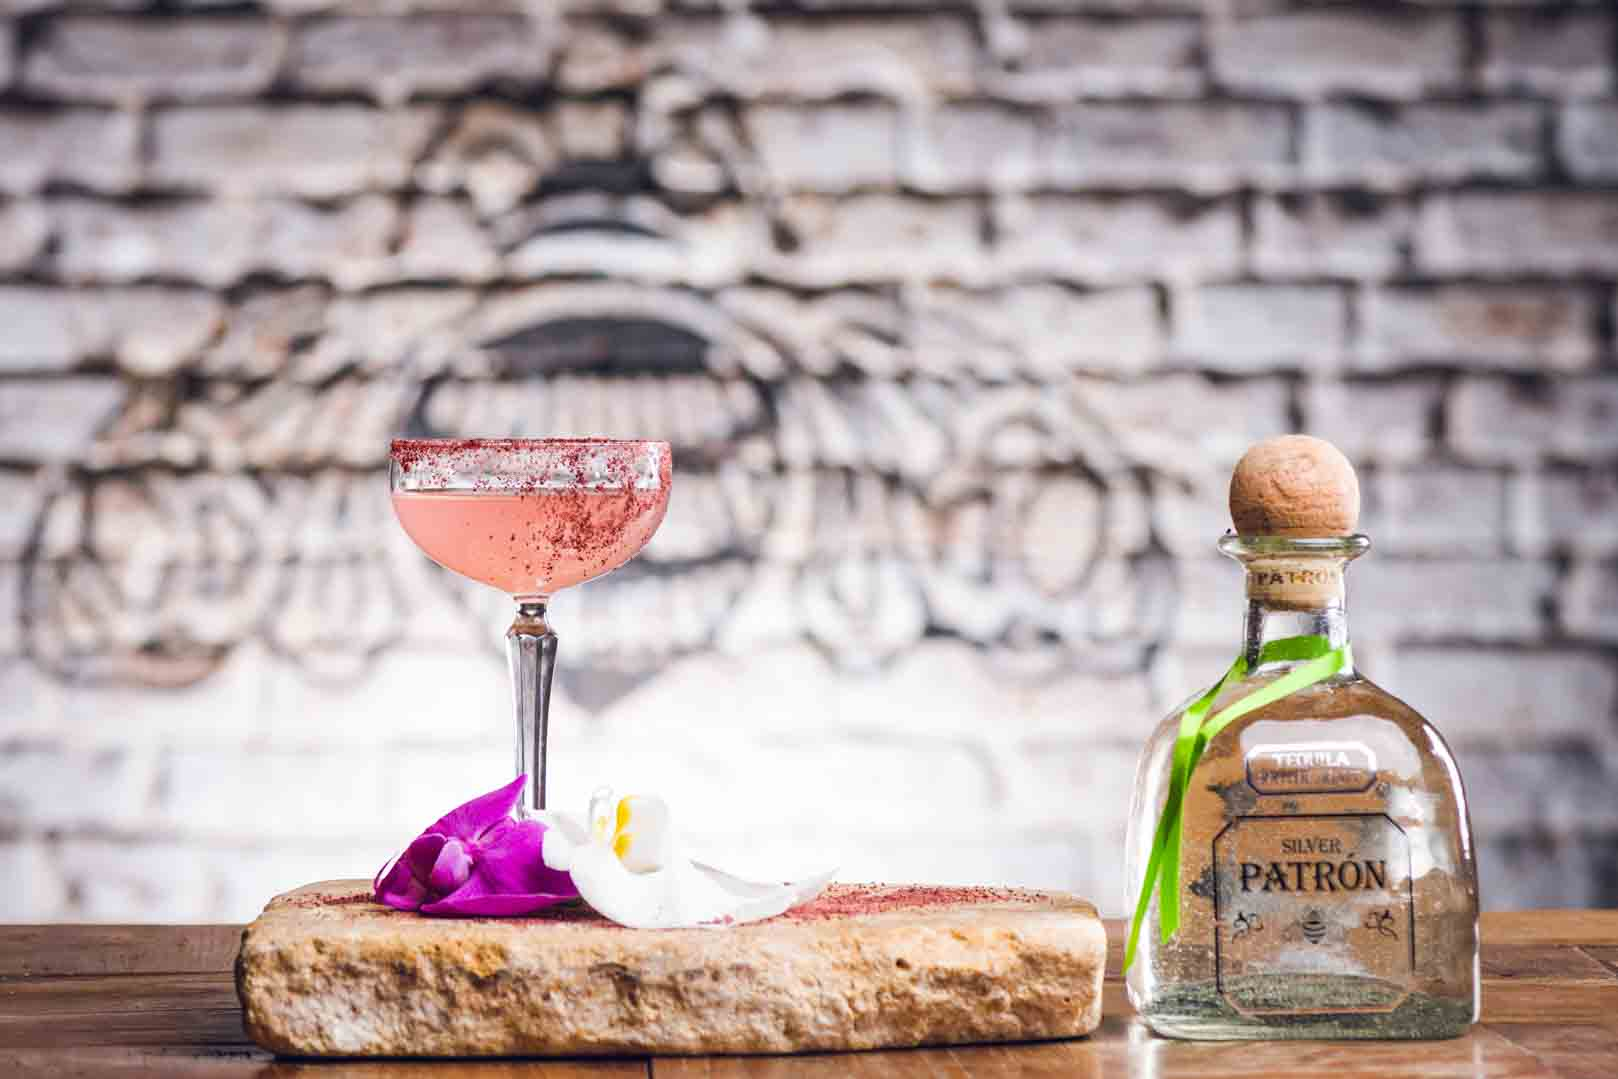 Jure Ursic Photography - Linden Consultancy and Royal Punch Catering Tequila patron-4